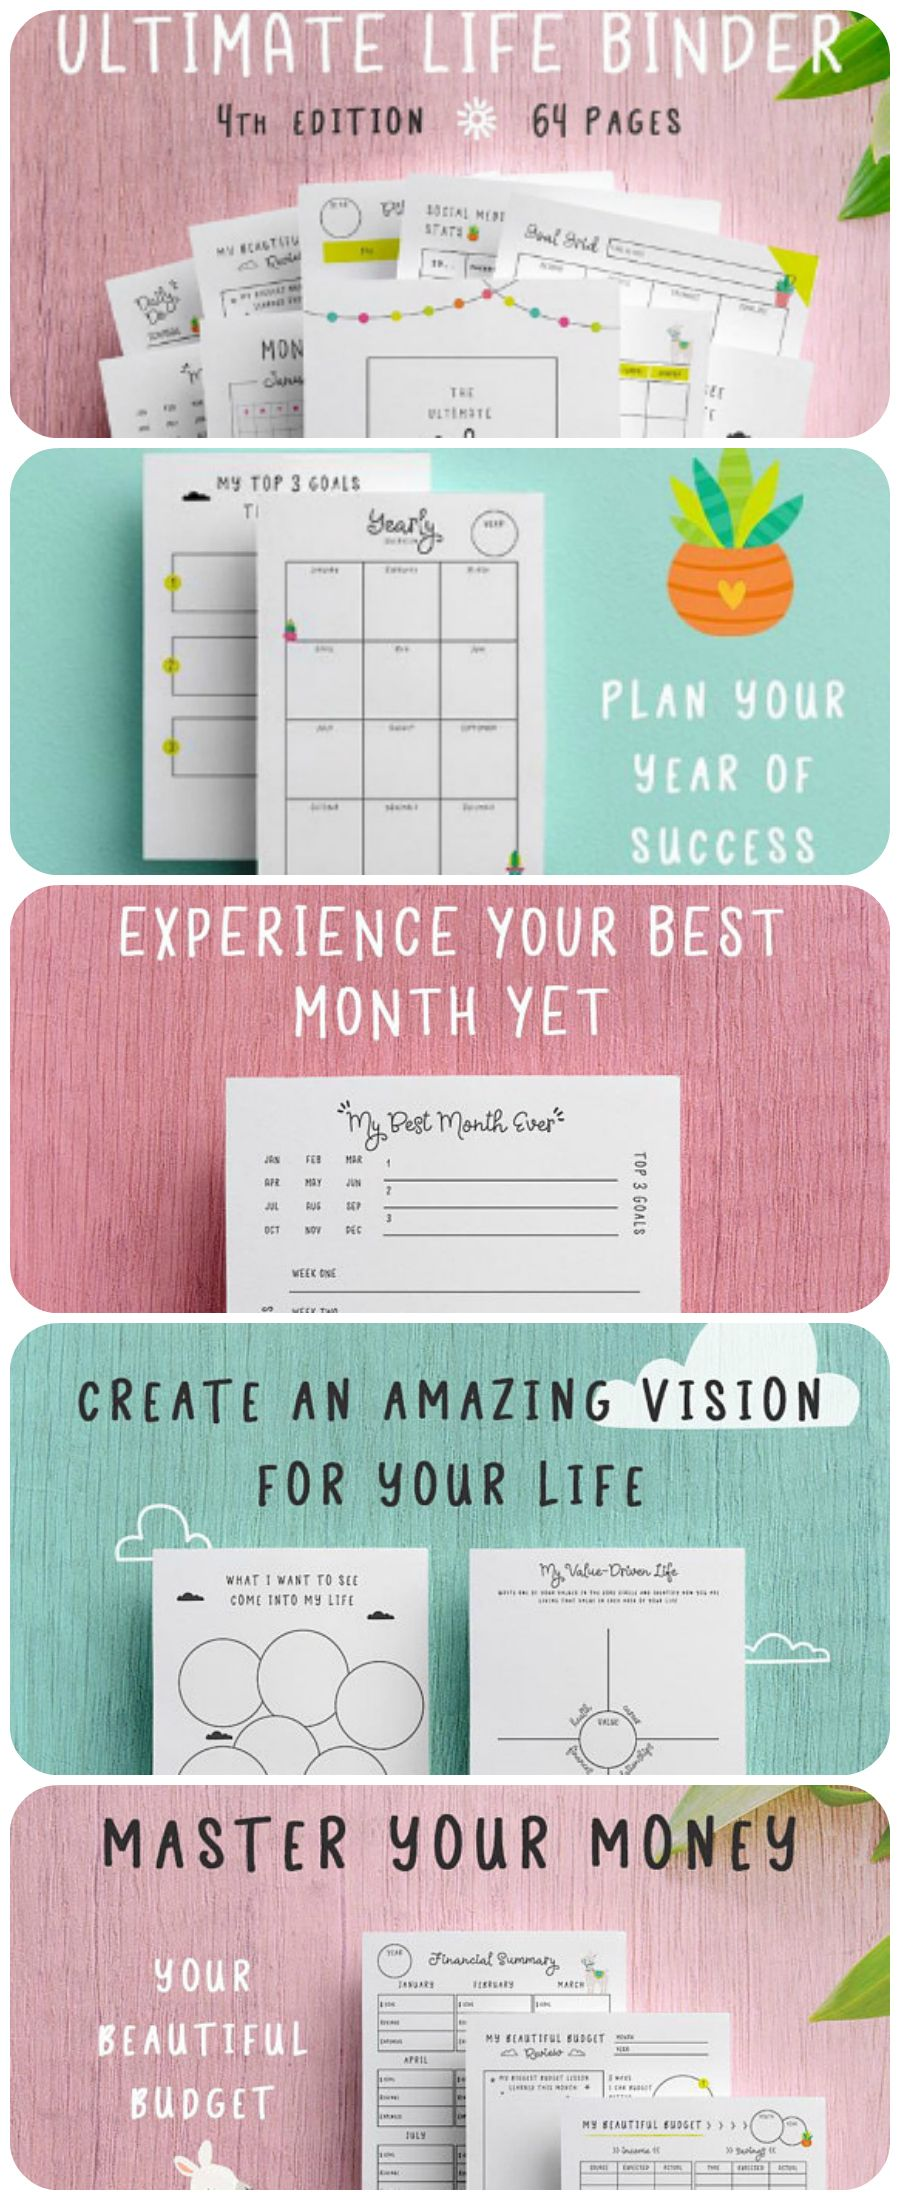 Oh my, this is planner addicts heaven. It has everything to organize your life! Love it #planner #planneraddict #plannercommunity #affiliate